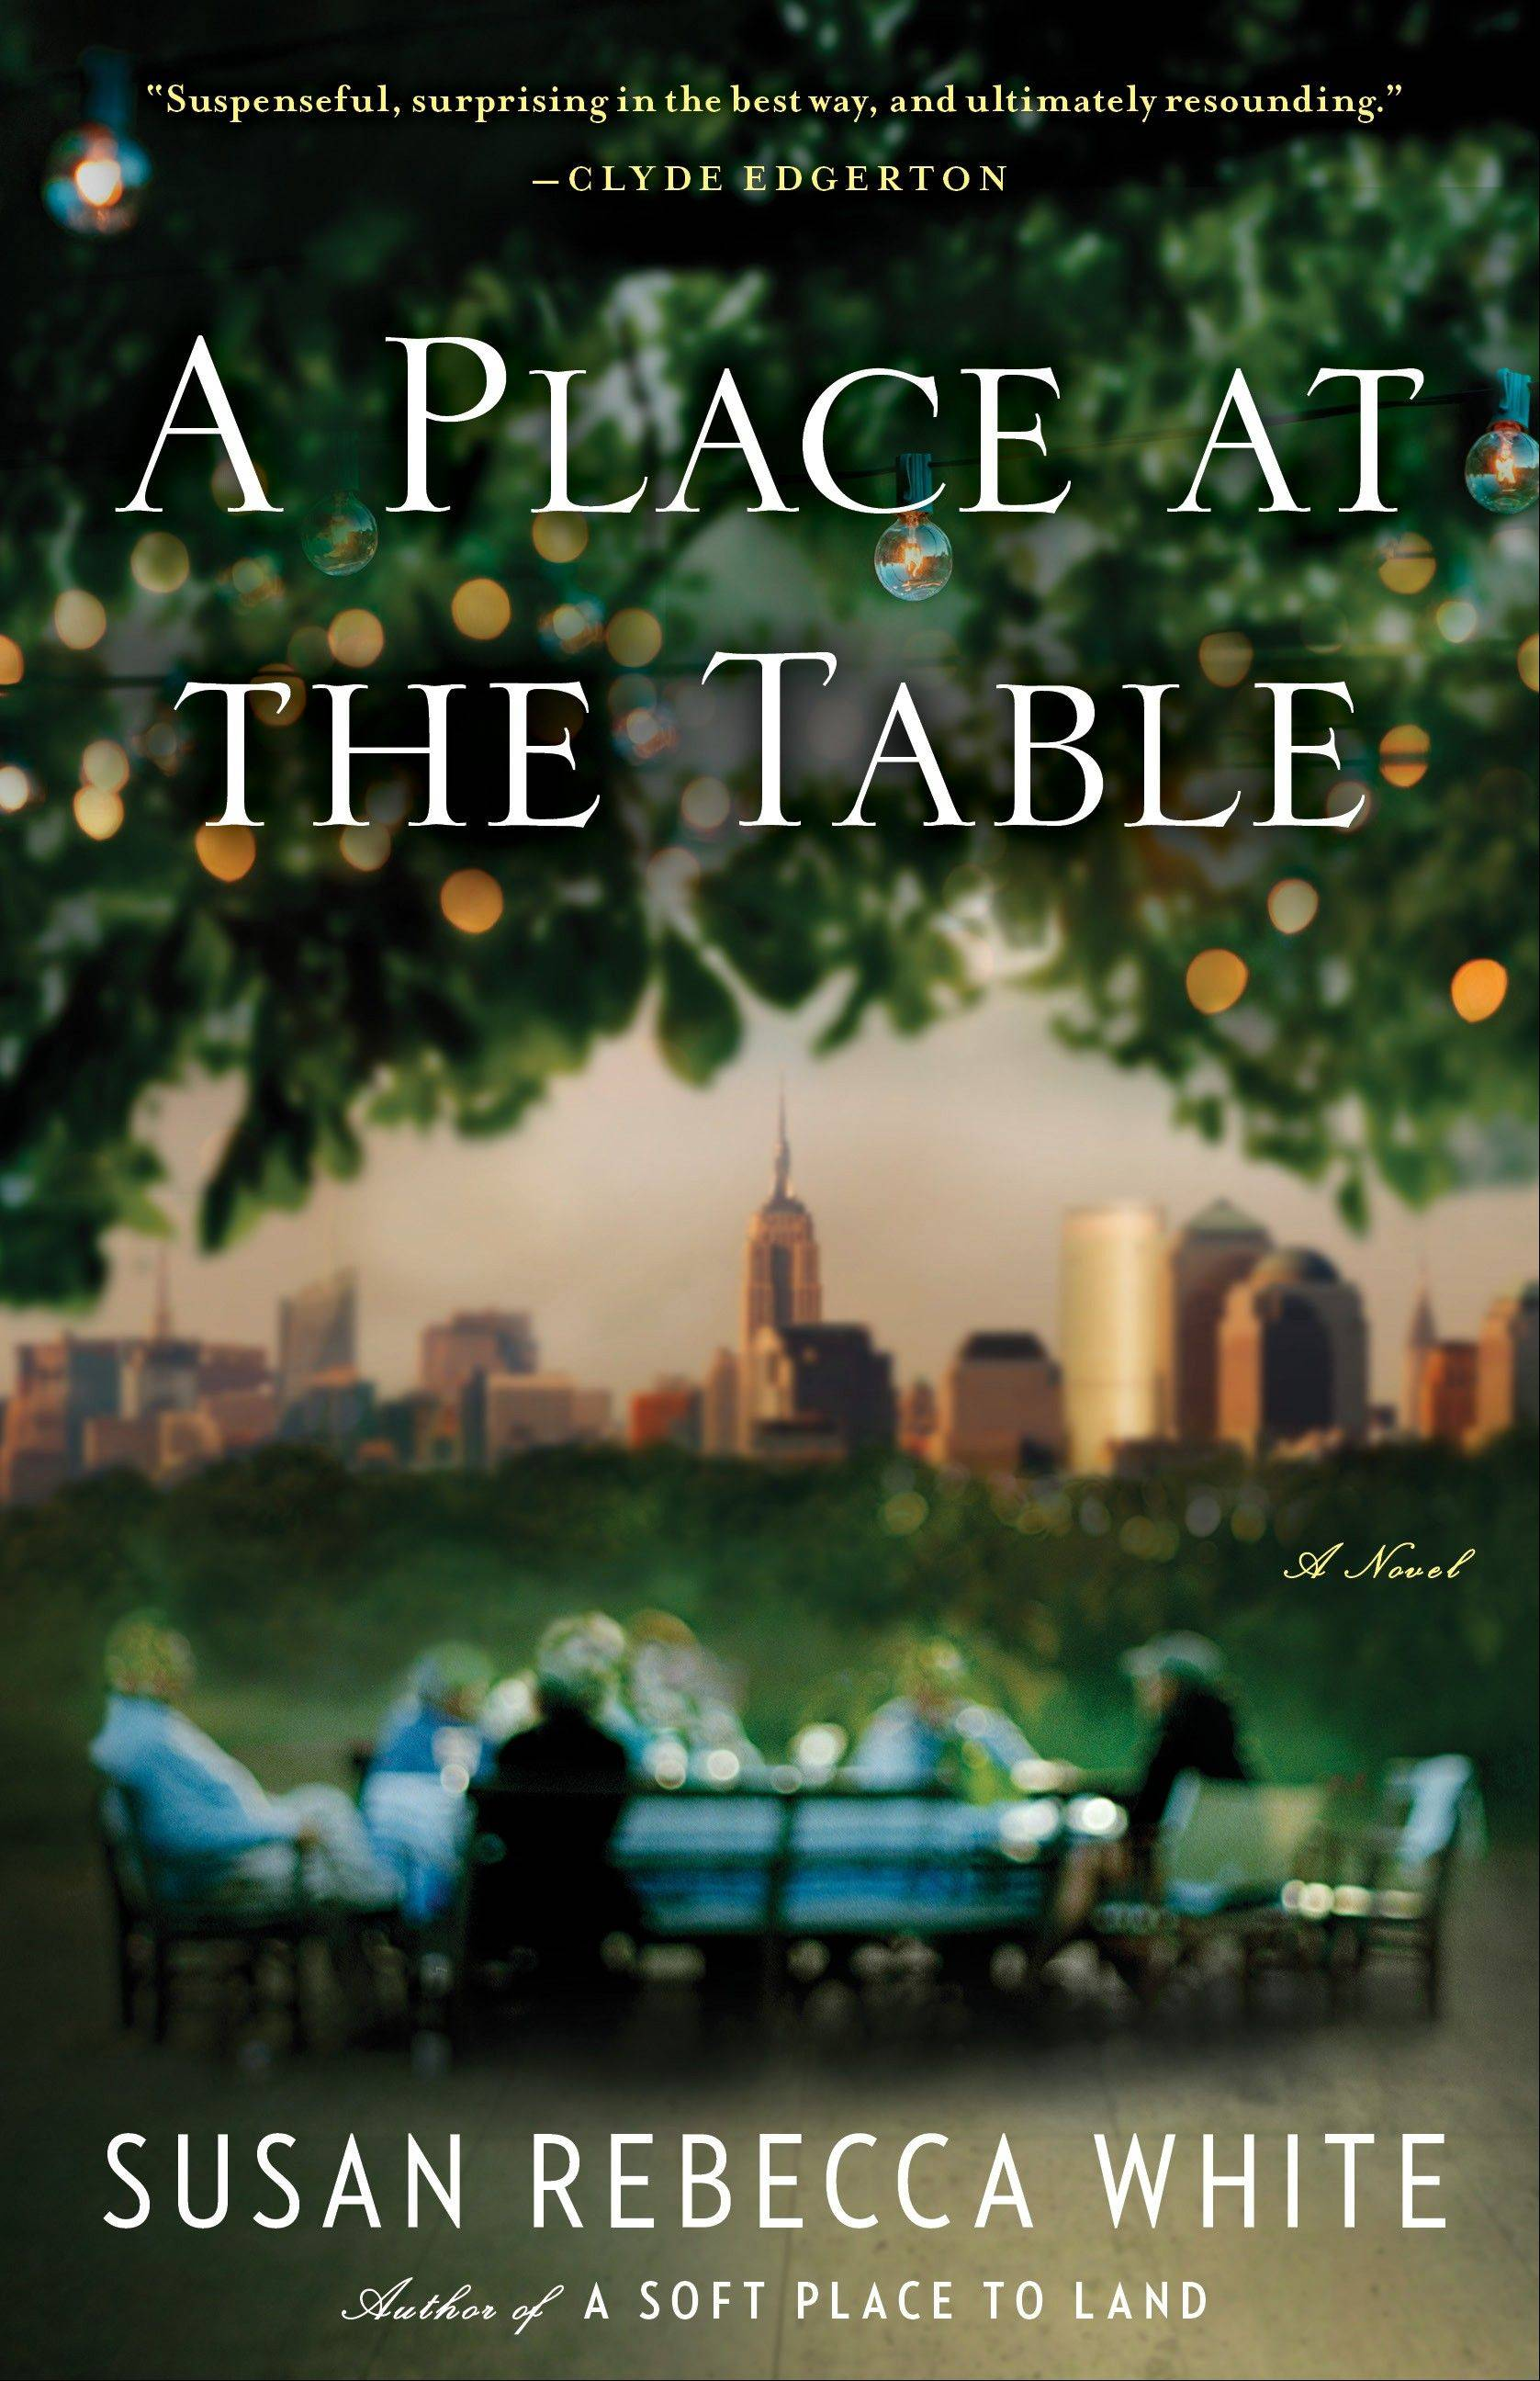 """A Place at the Table"" by Susan Rebecca White"